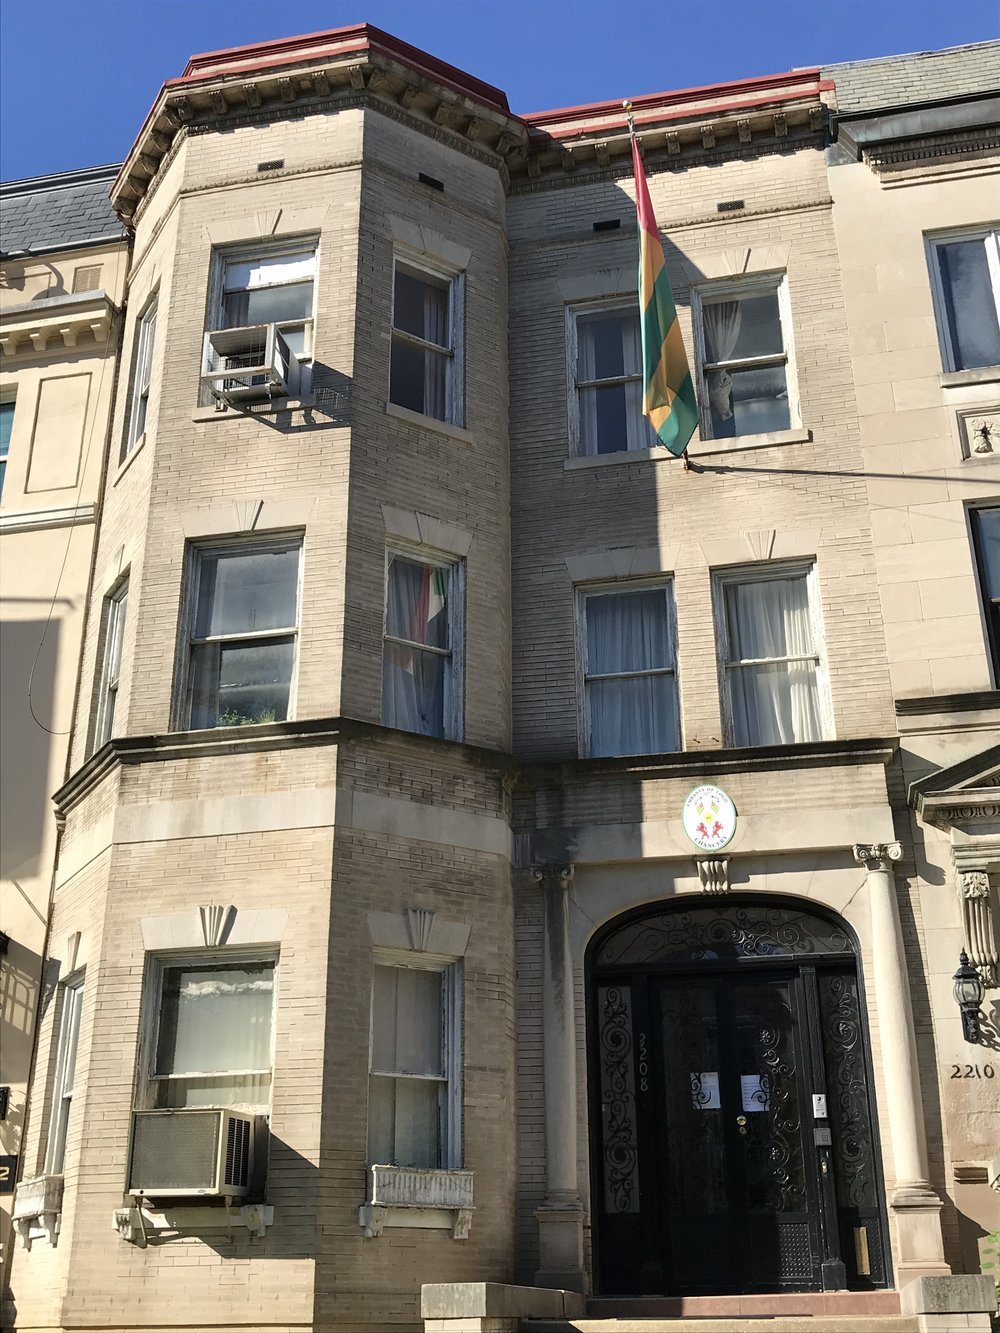 The Embassy of Togo.